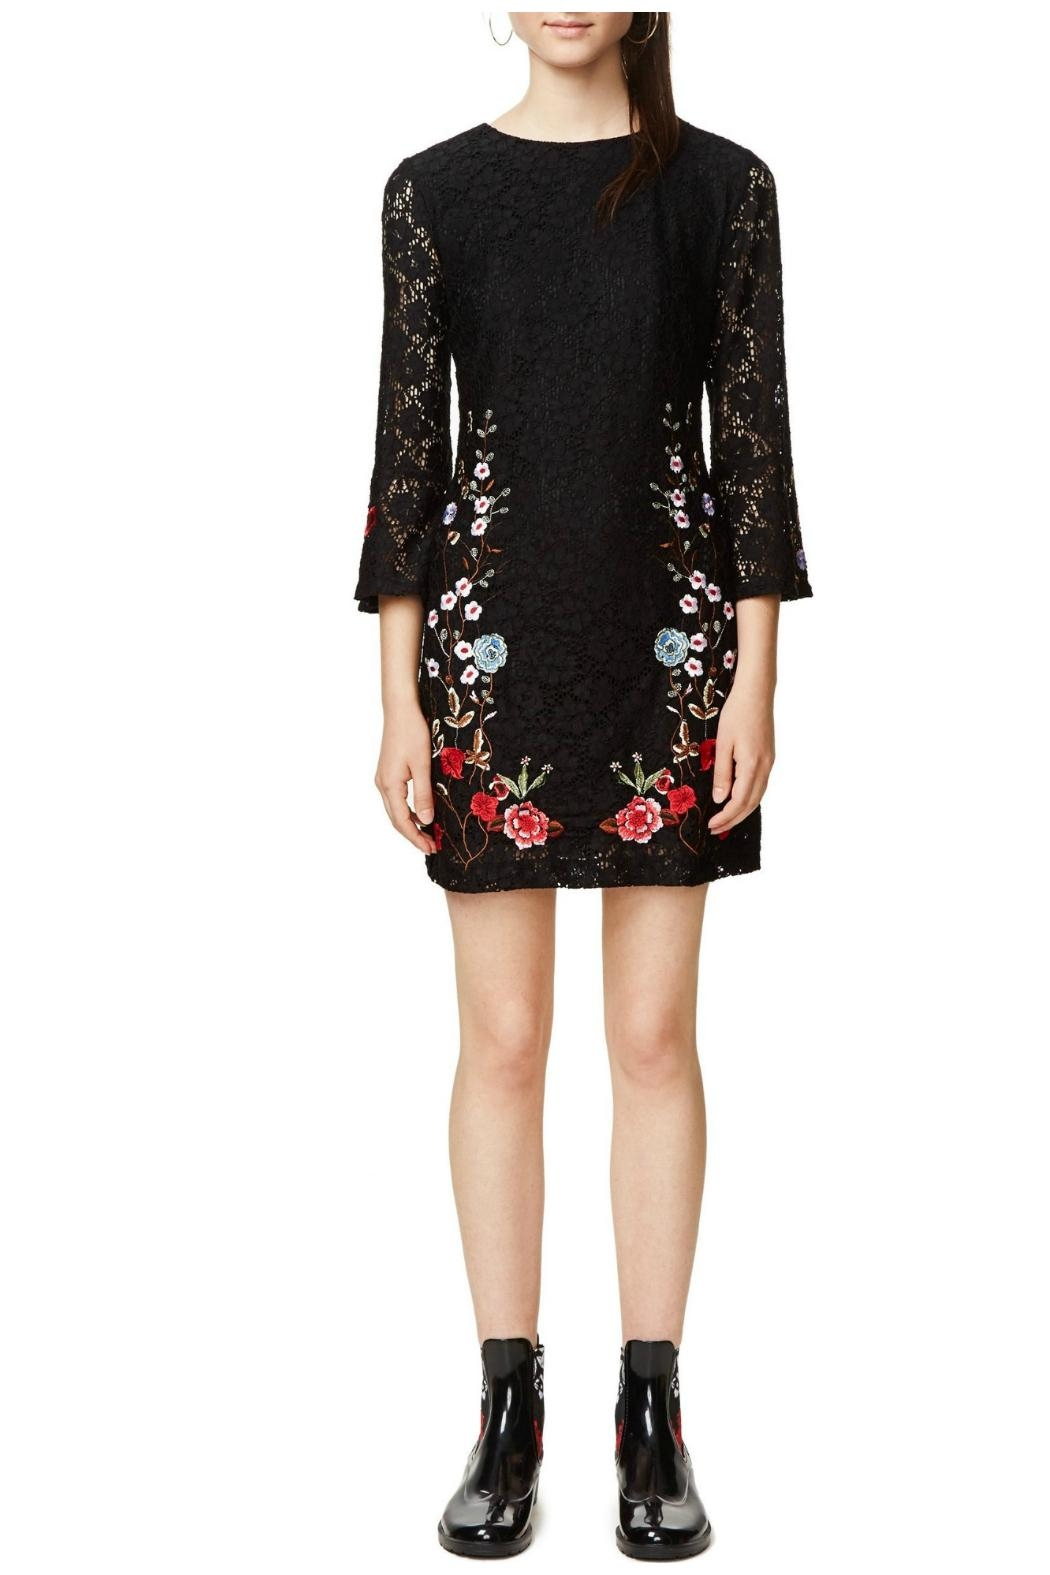 Desigual - Spain Black Lacy Dress - Main Image